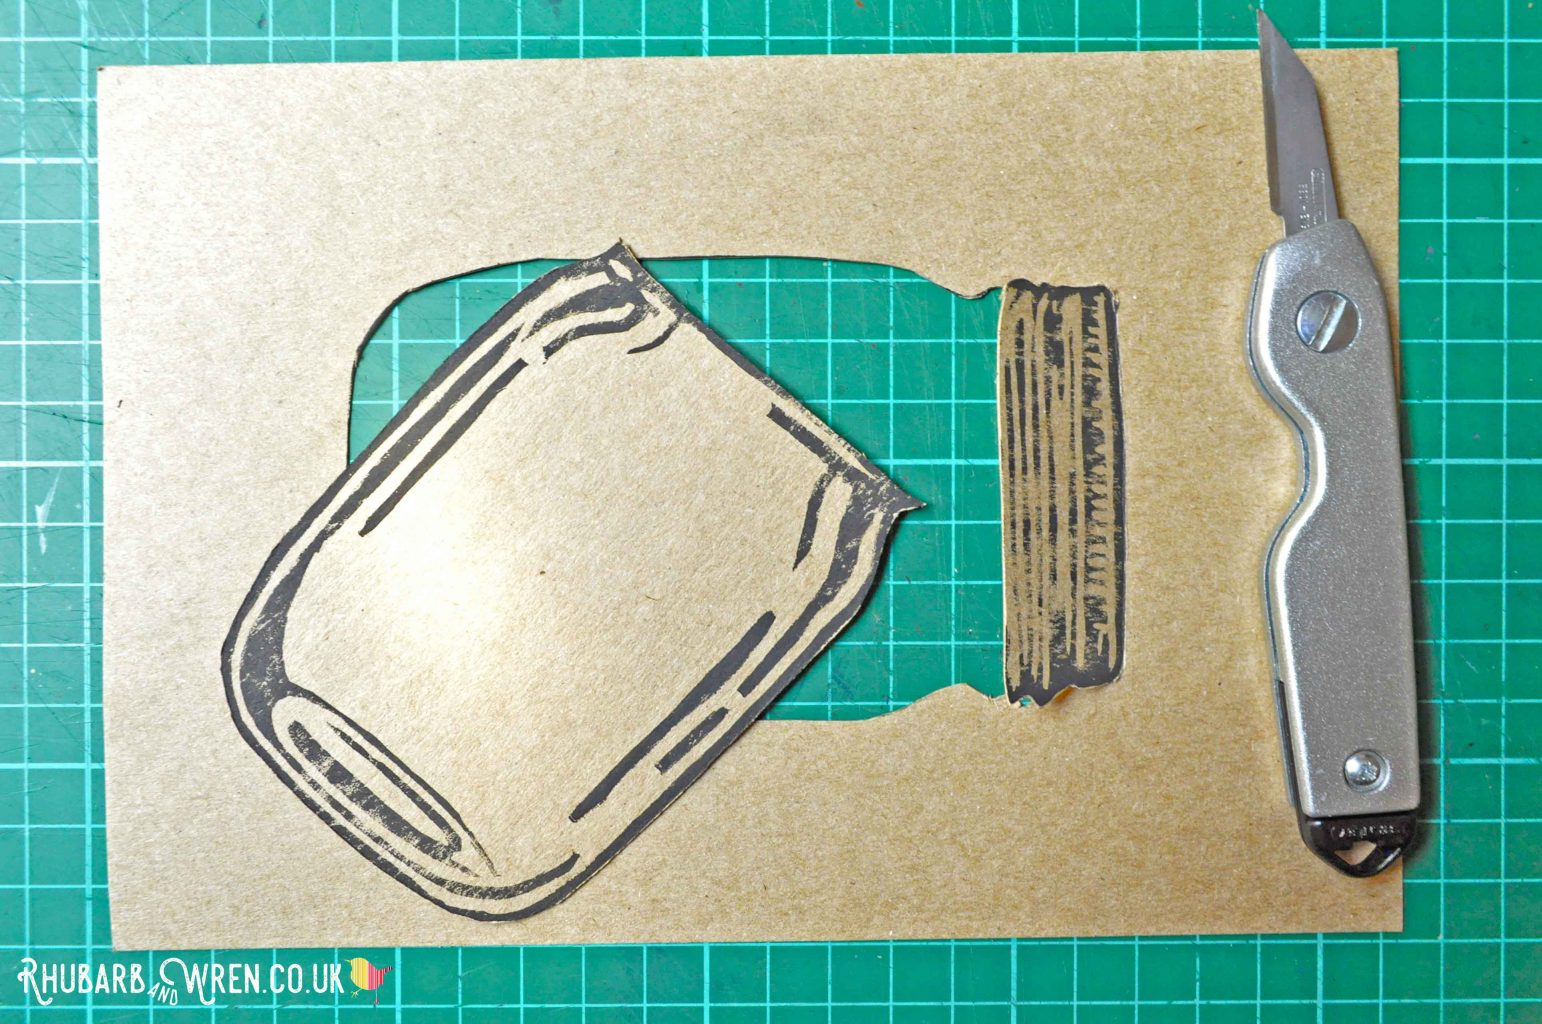 Half way through a home-made mason jar shaker card